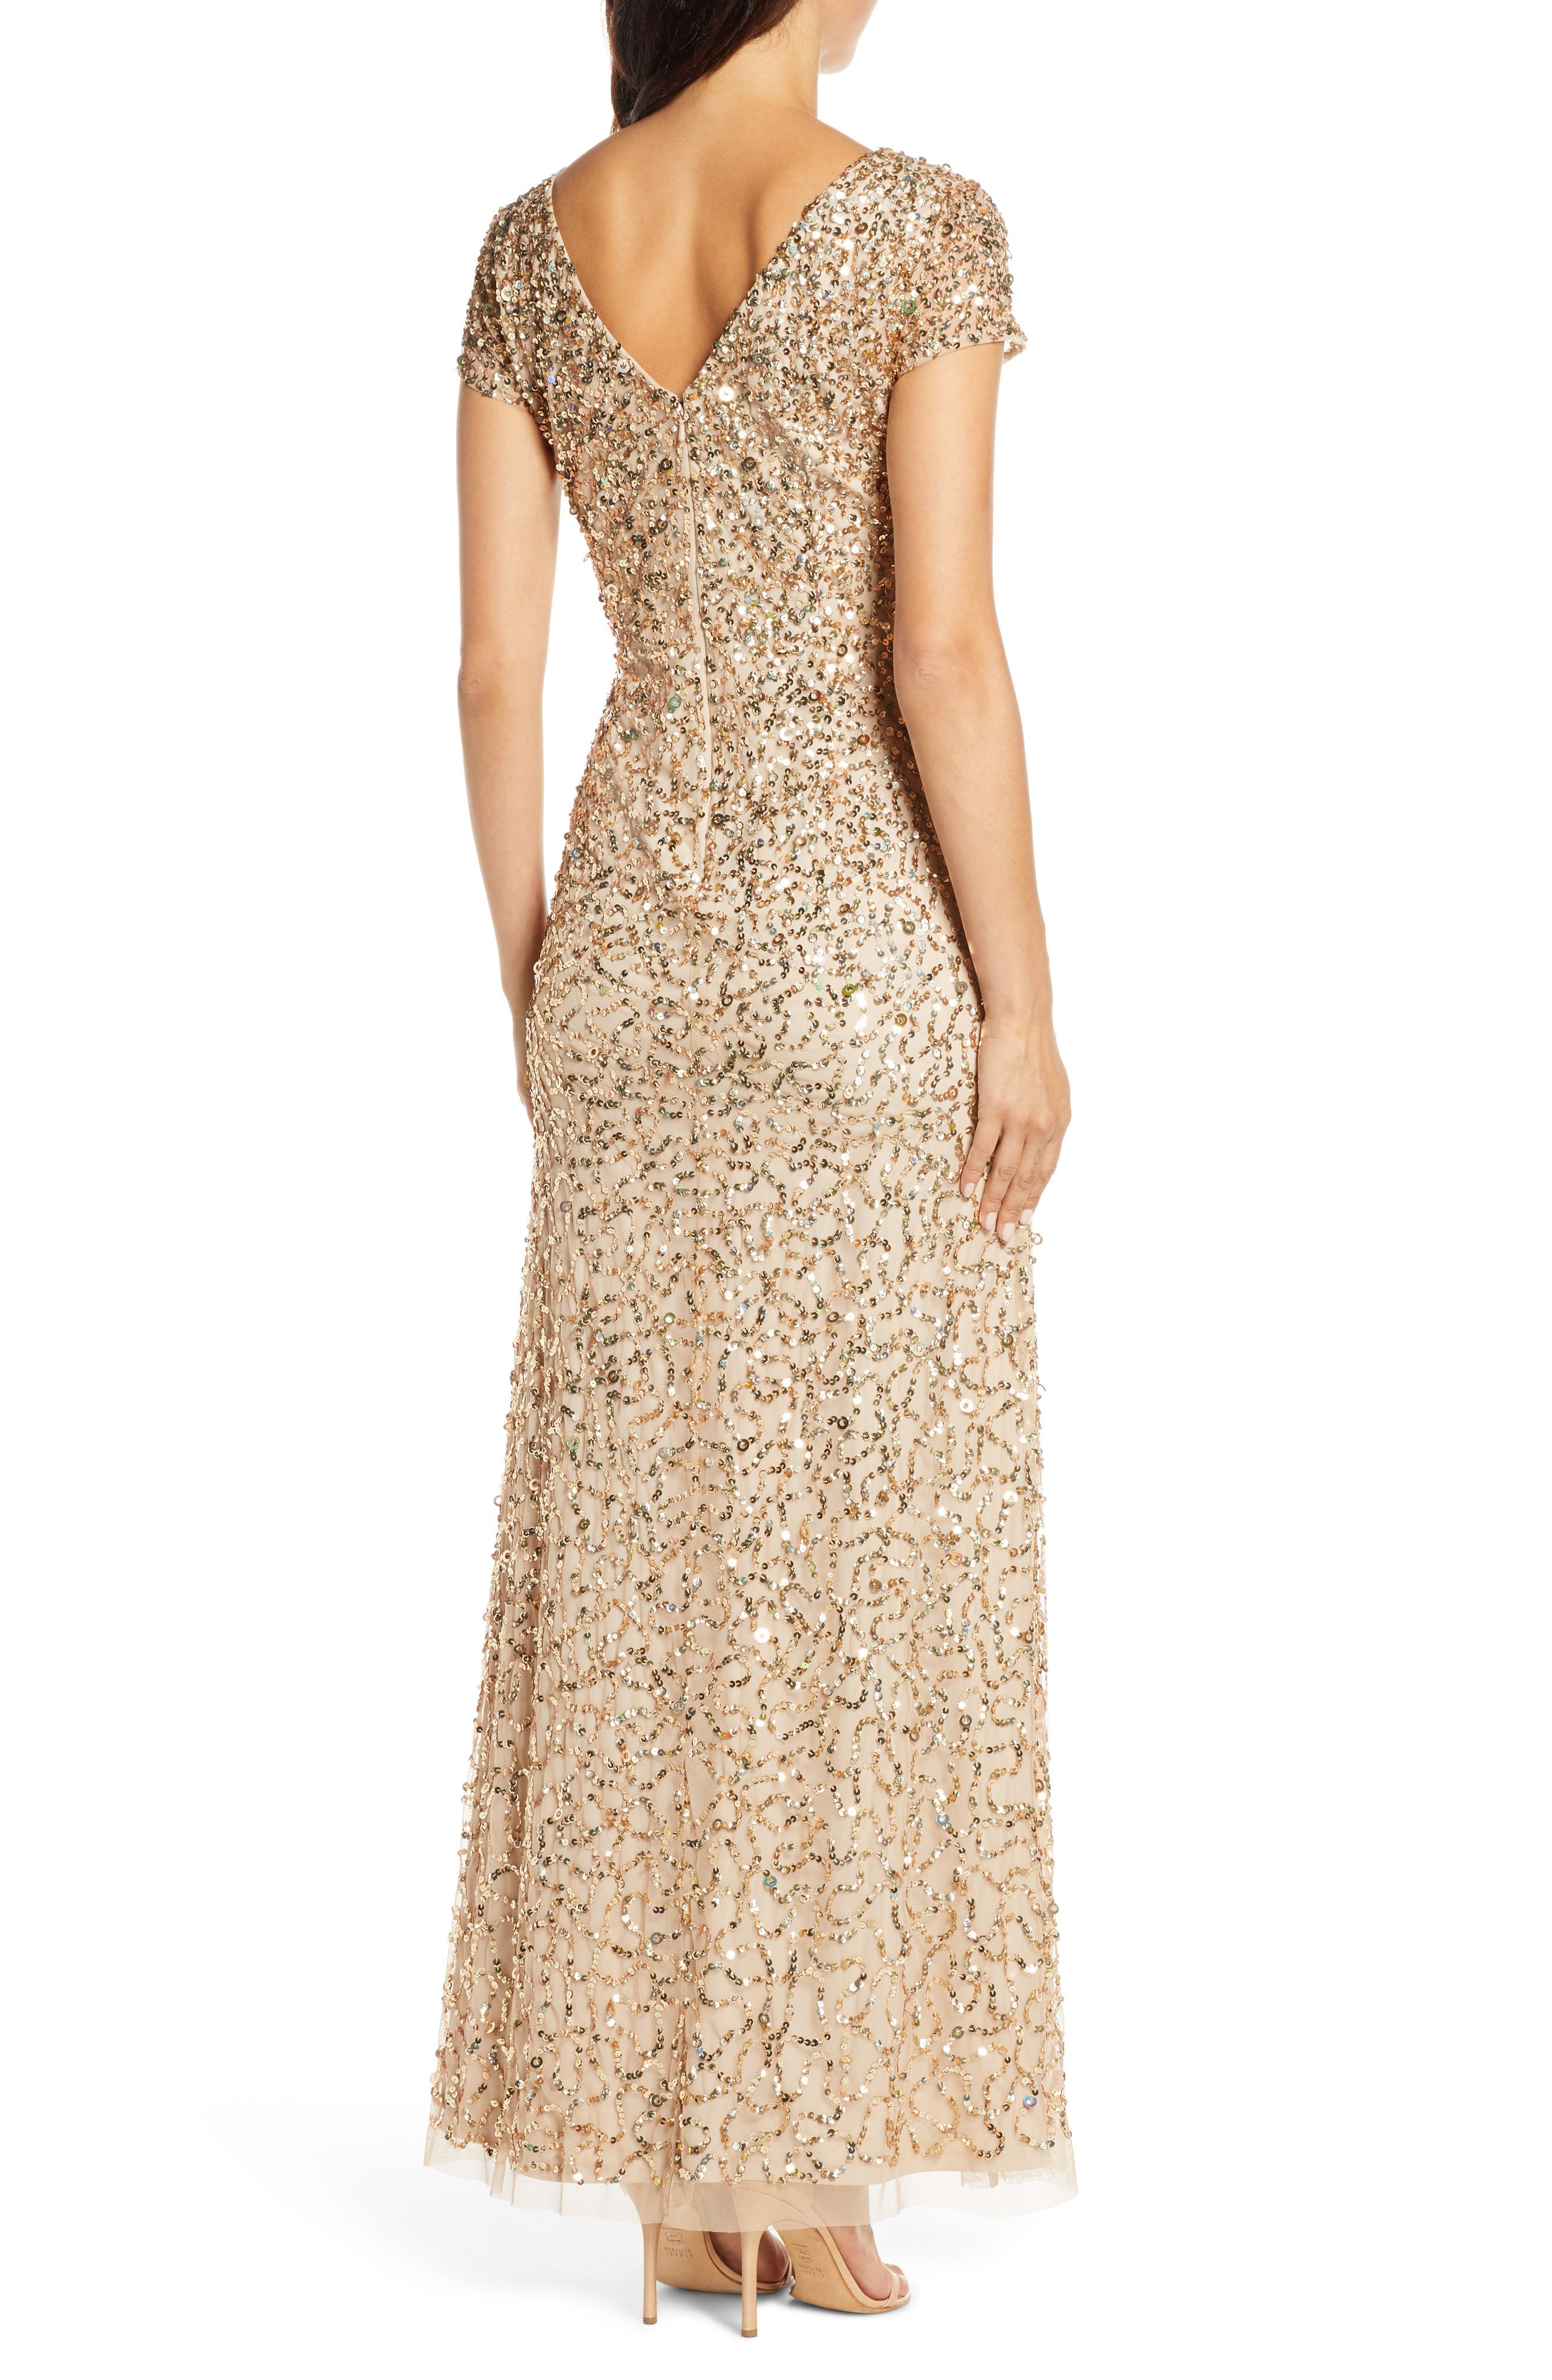 92595722107d Adrianna Papell Dresses | Nordstrom